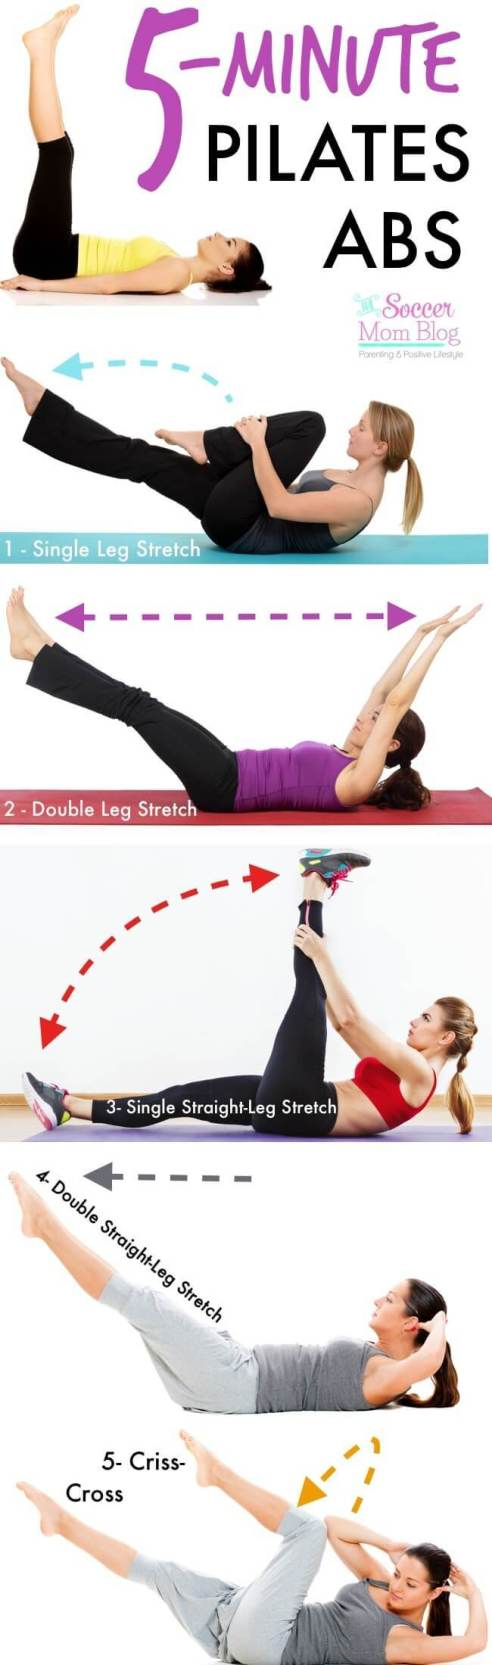 Looking for a flat tummy workout? Try these abs workouts for toned and flat belly! These quick workouts take 5 minutes of your time and you can do them daily, whenever you have the time. This amazing list includes 5-minute ab workouts for flat belly, 5-minute butt workouts, 5-minute leg workouts and inner thigh workouts and 5-minute arm workouts. Most of these exercises require almost no equipment. Some of them - just a pair of dumbbells and you can do them at home or anywhere you want. Have fun!